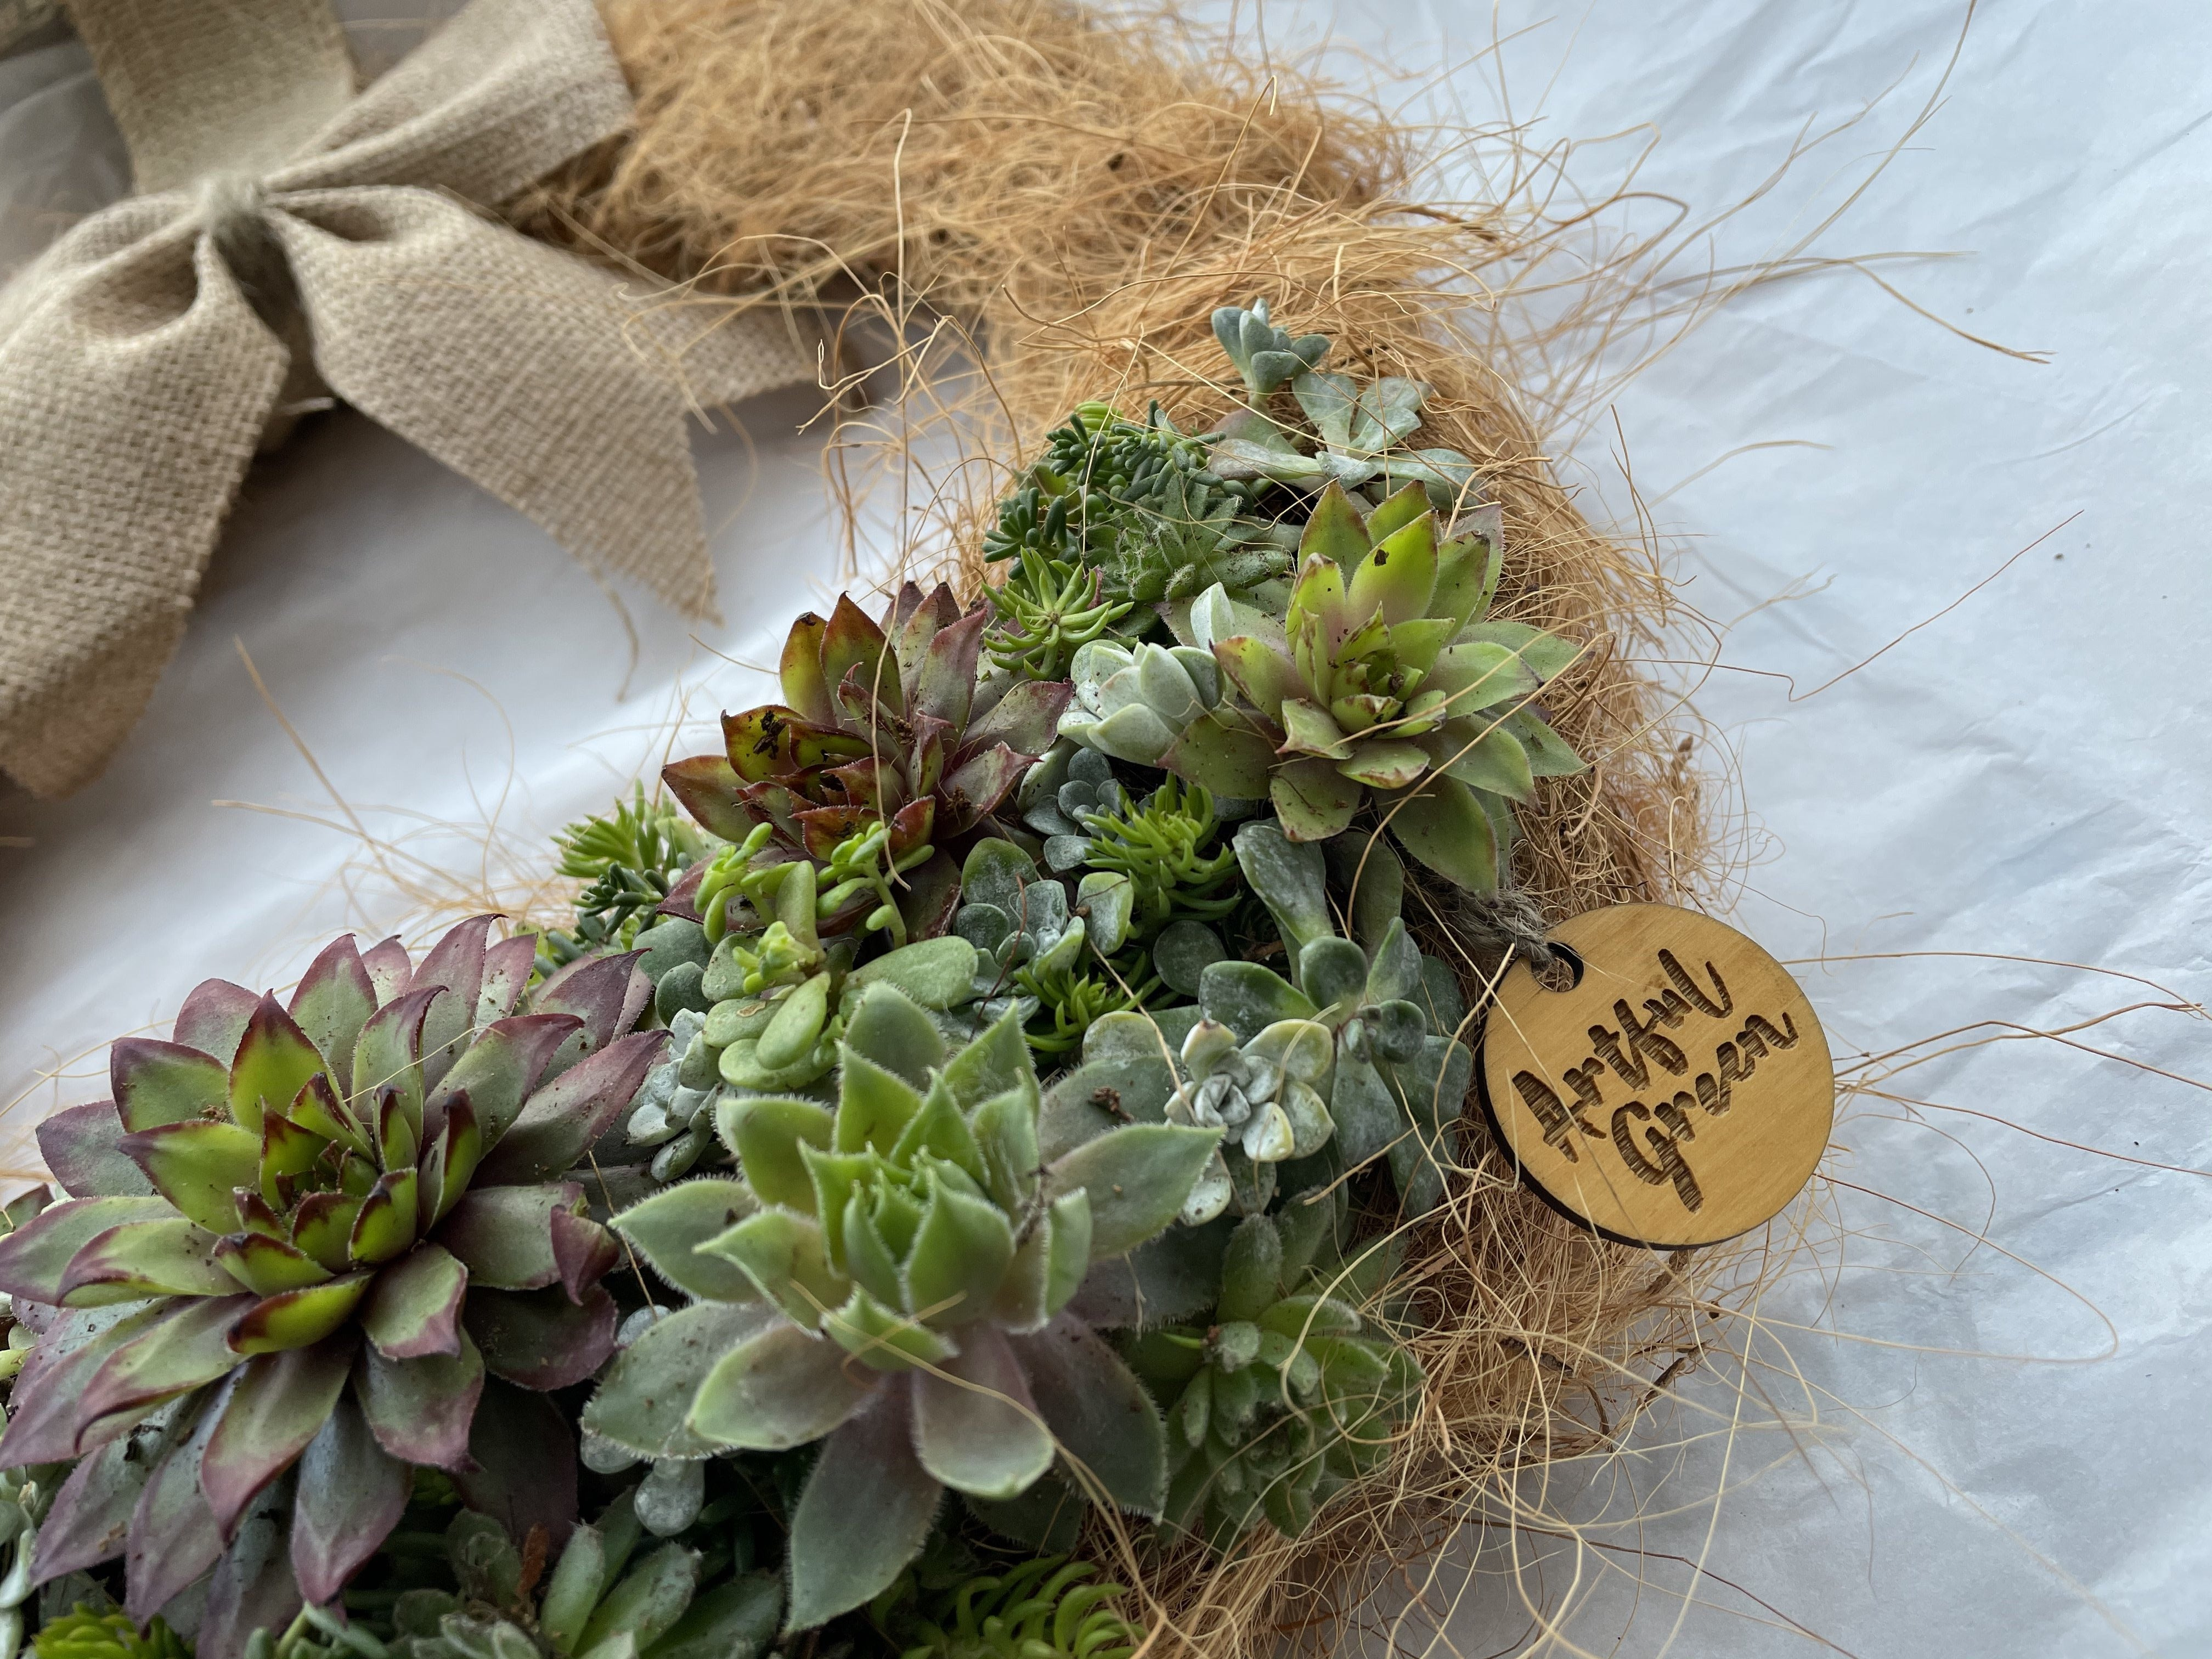 Our Living Wreaths are ever evolving, filled with Sedums and Sempervivums to keep you entertained through the seasons.